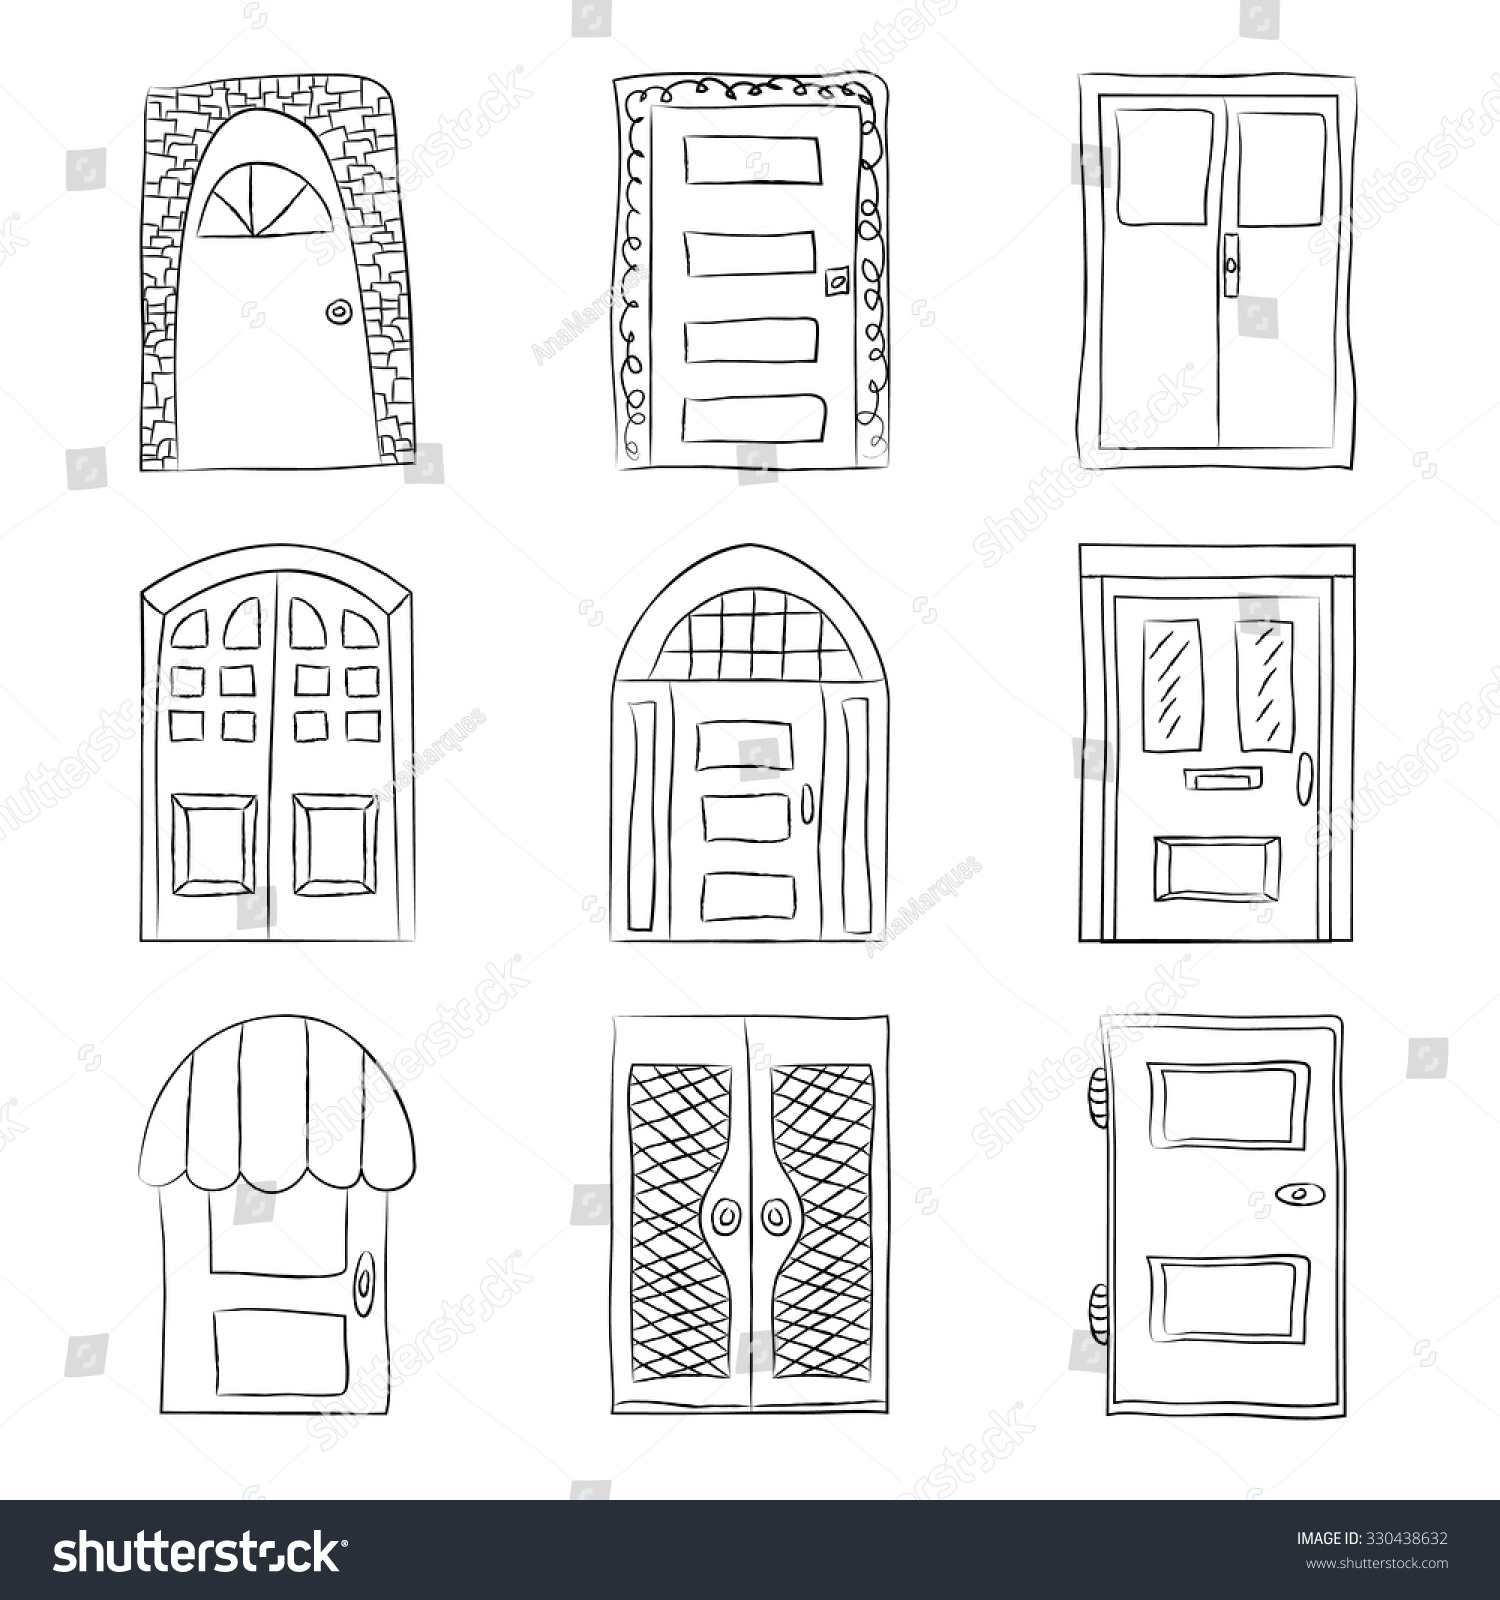 Simple door drawing - Collection Of Old Door Icon Isolated Illustration Vector Set With Close Up Wooden Door